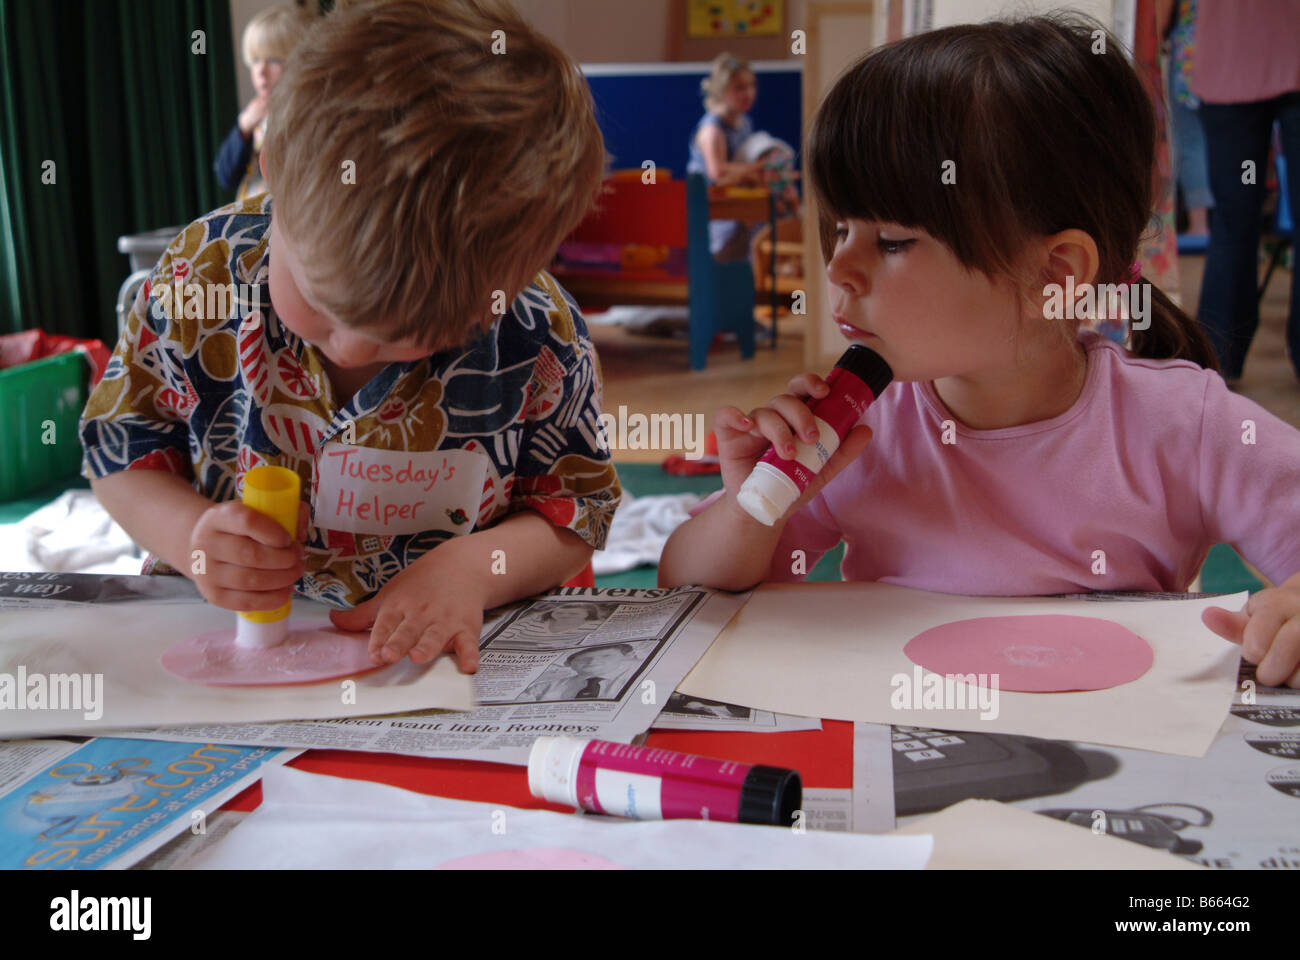 Children glueing pictures at nursery - Stock Image